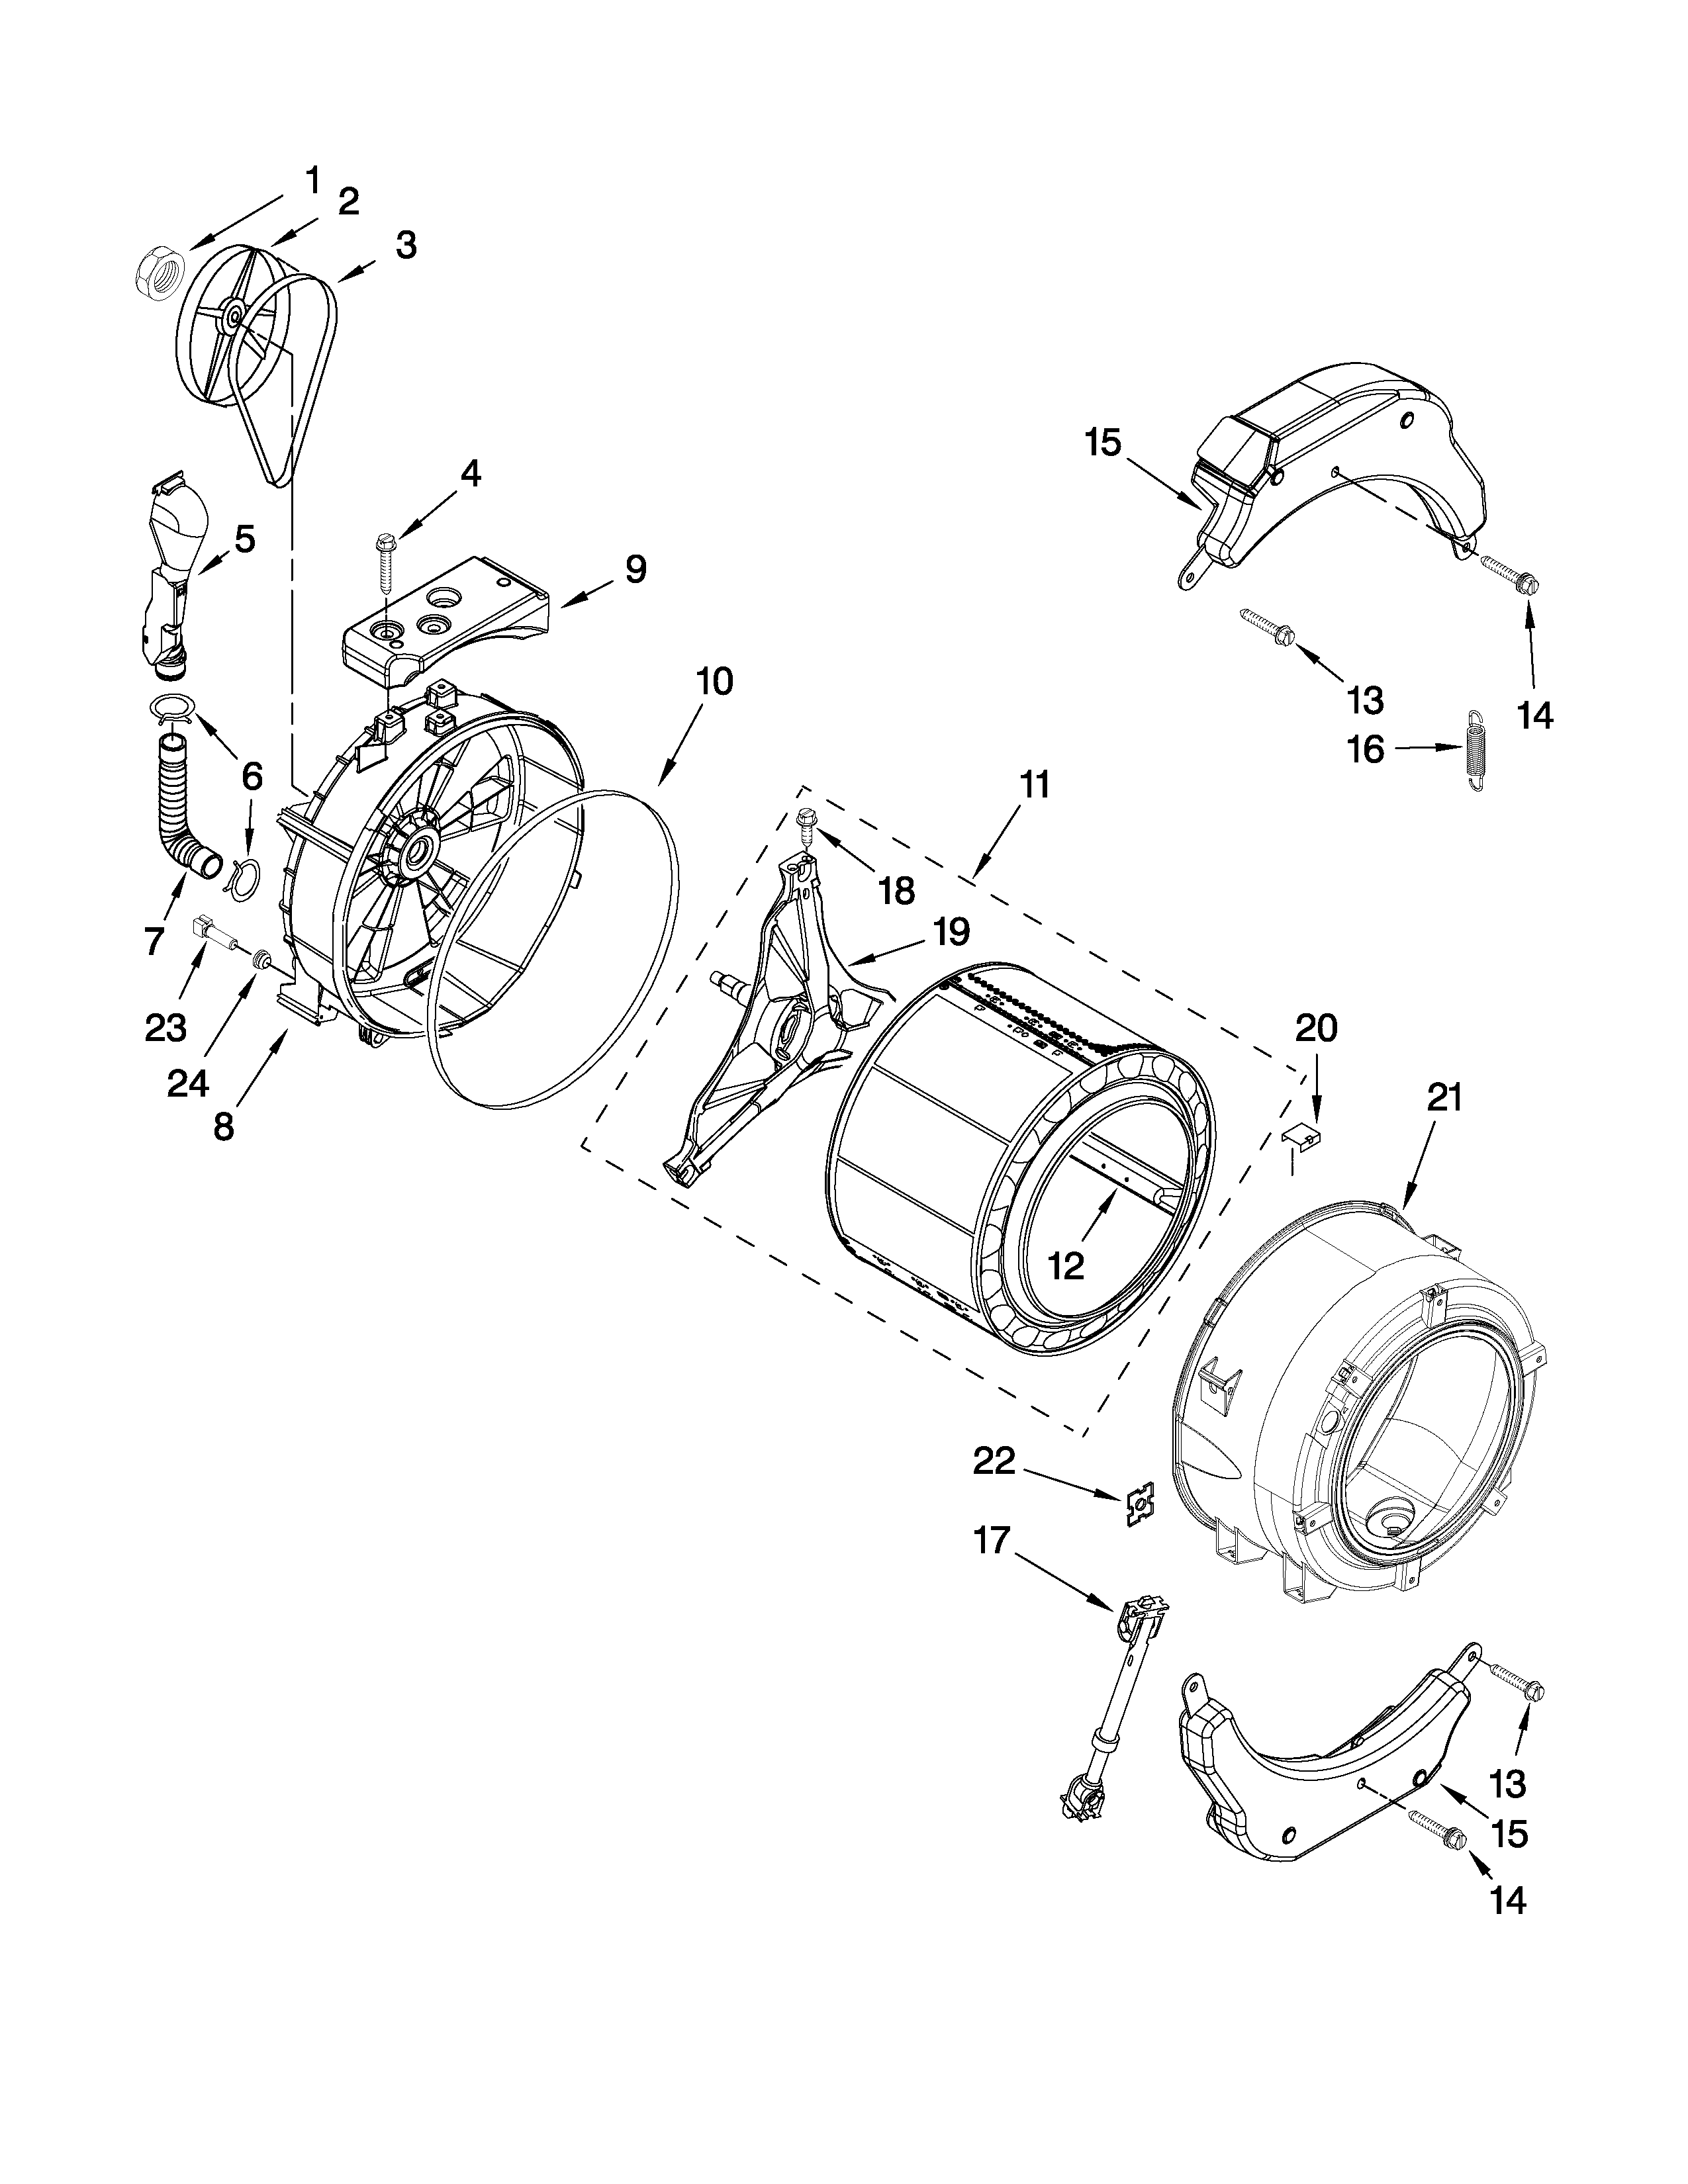 Whirlpool WFW9050XW00 tub and basket parts diagram